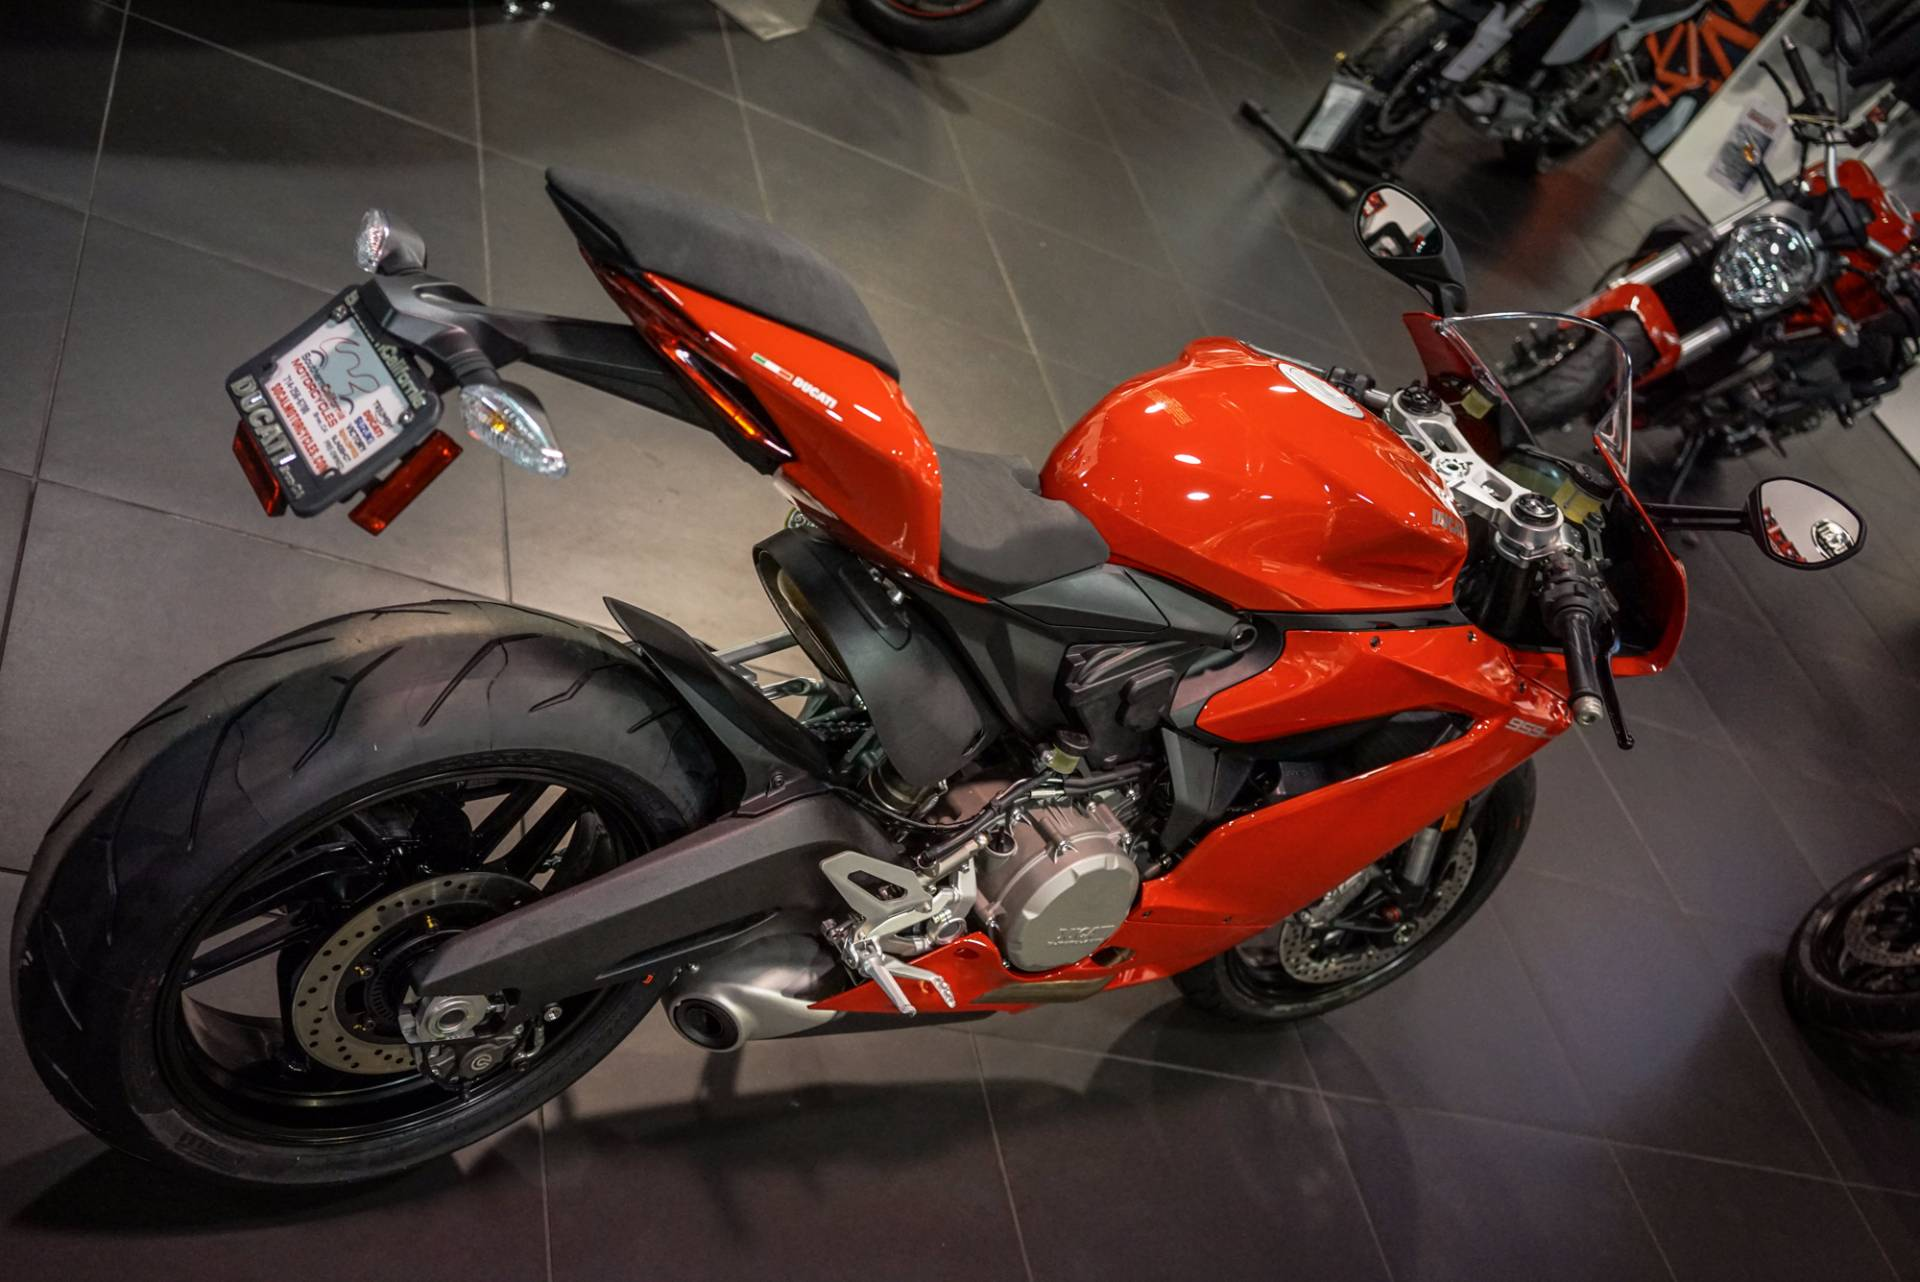 new 2017 ducati 959 panigale motorcycles in brea, ca